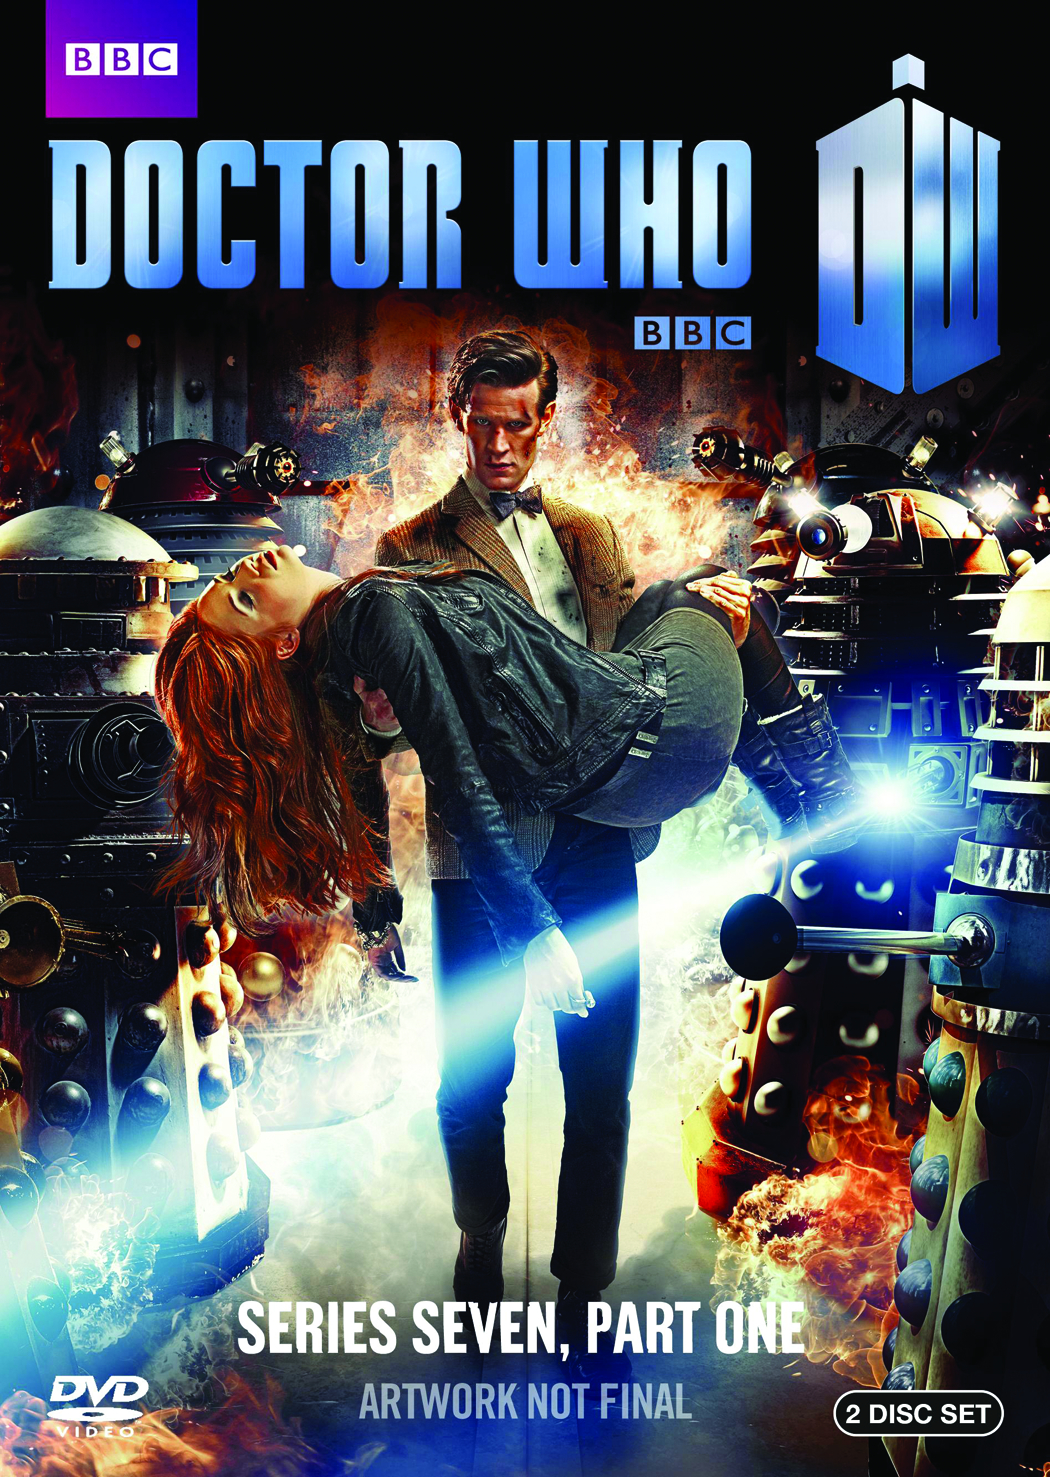 DOCTOR WHO DVD SER 07 PART ONE